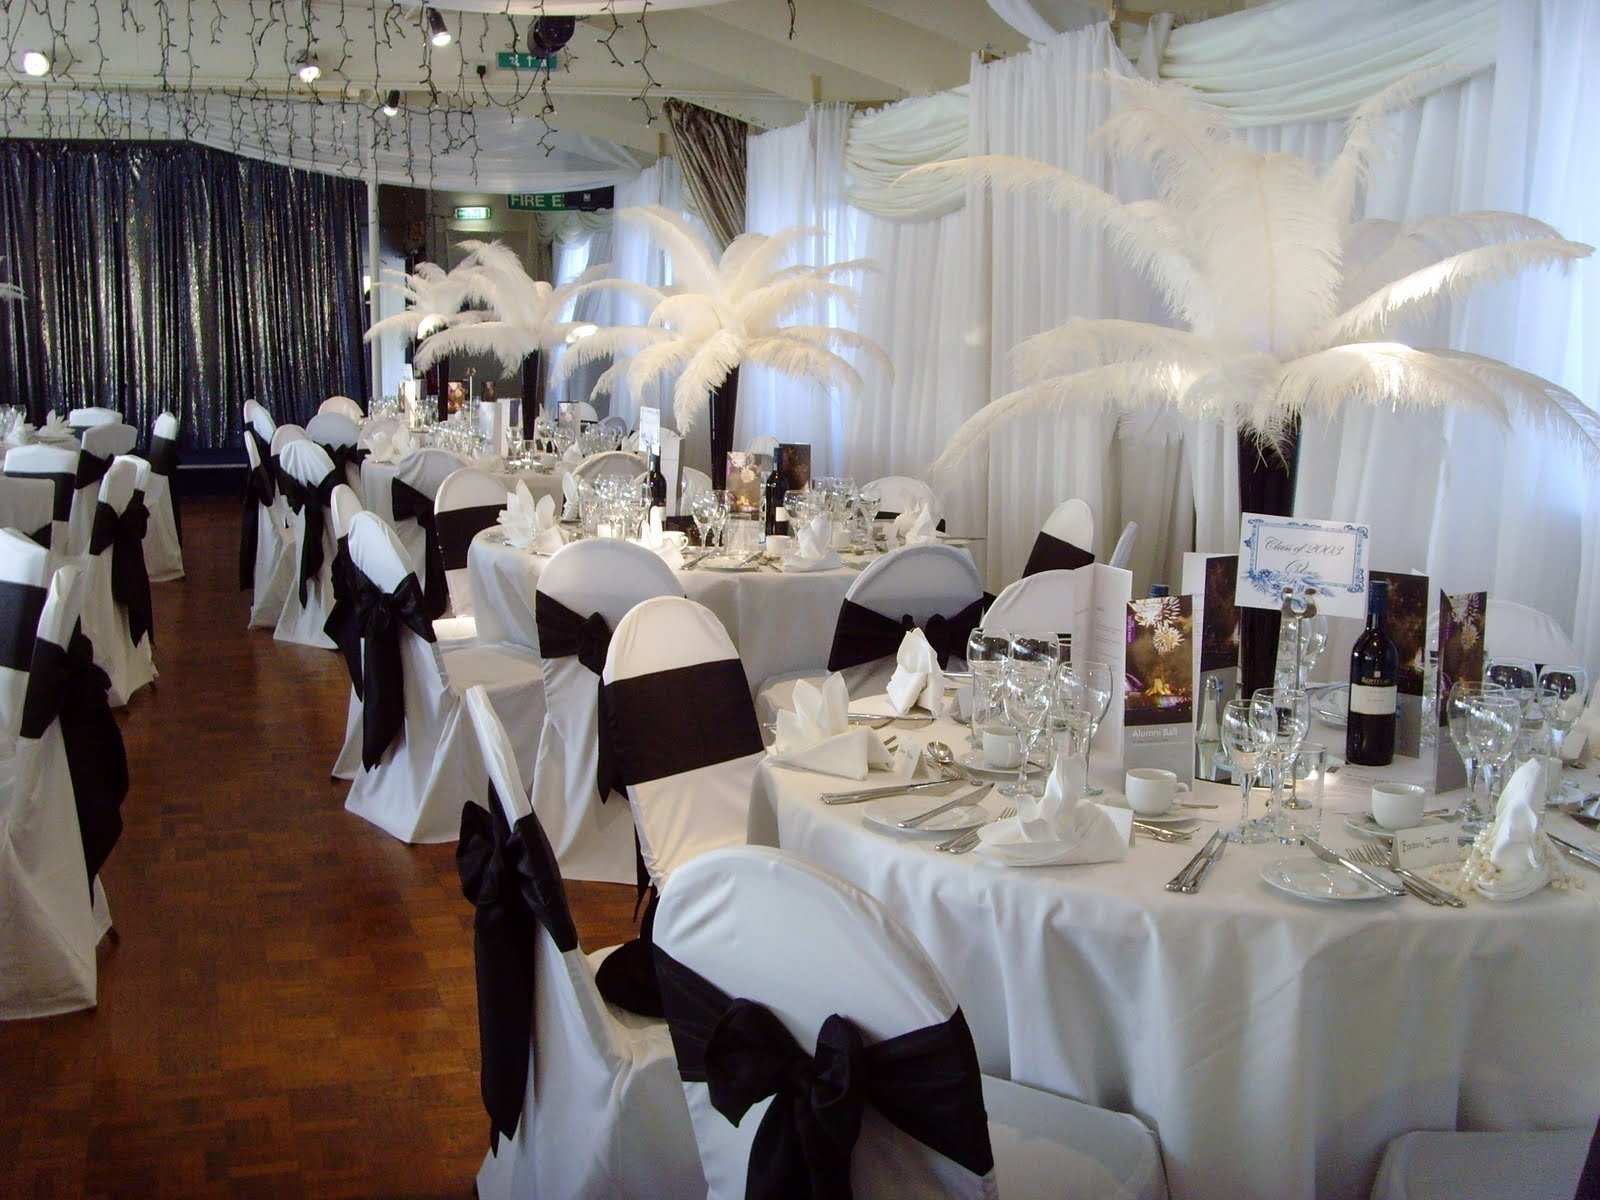 10 Awesome Anniversary Ideas On A Budget wedding head table decoration ideas the best decorations 50th 2020